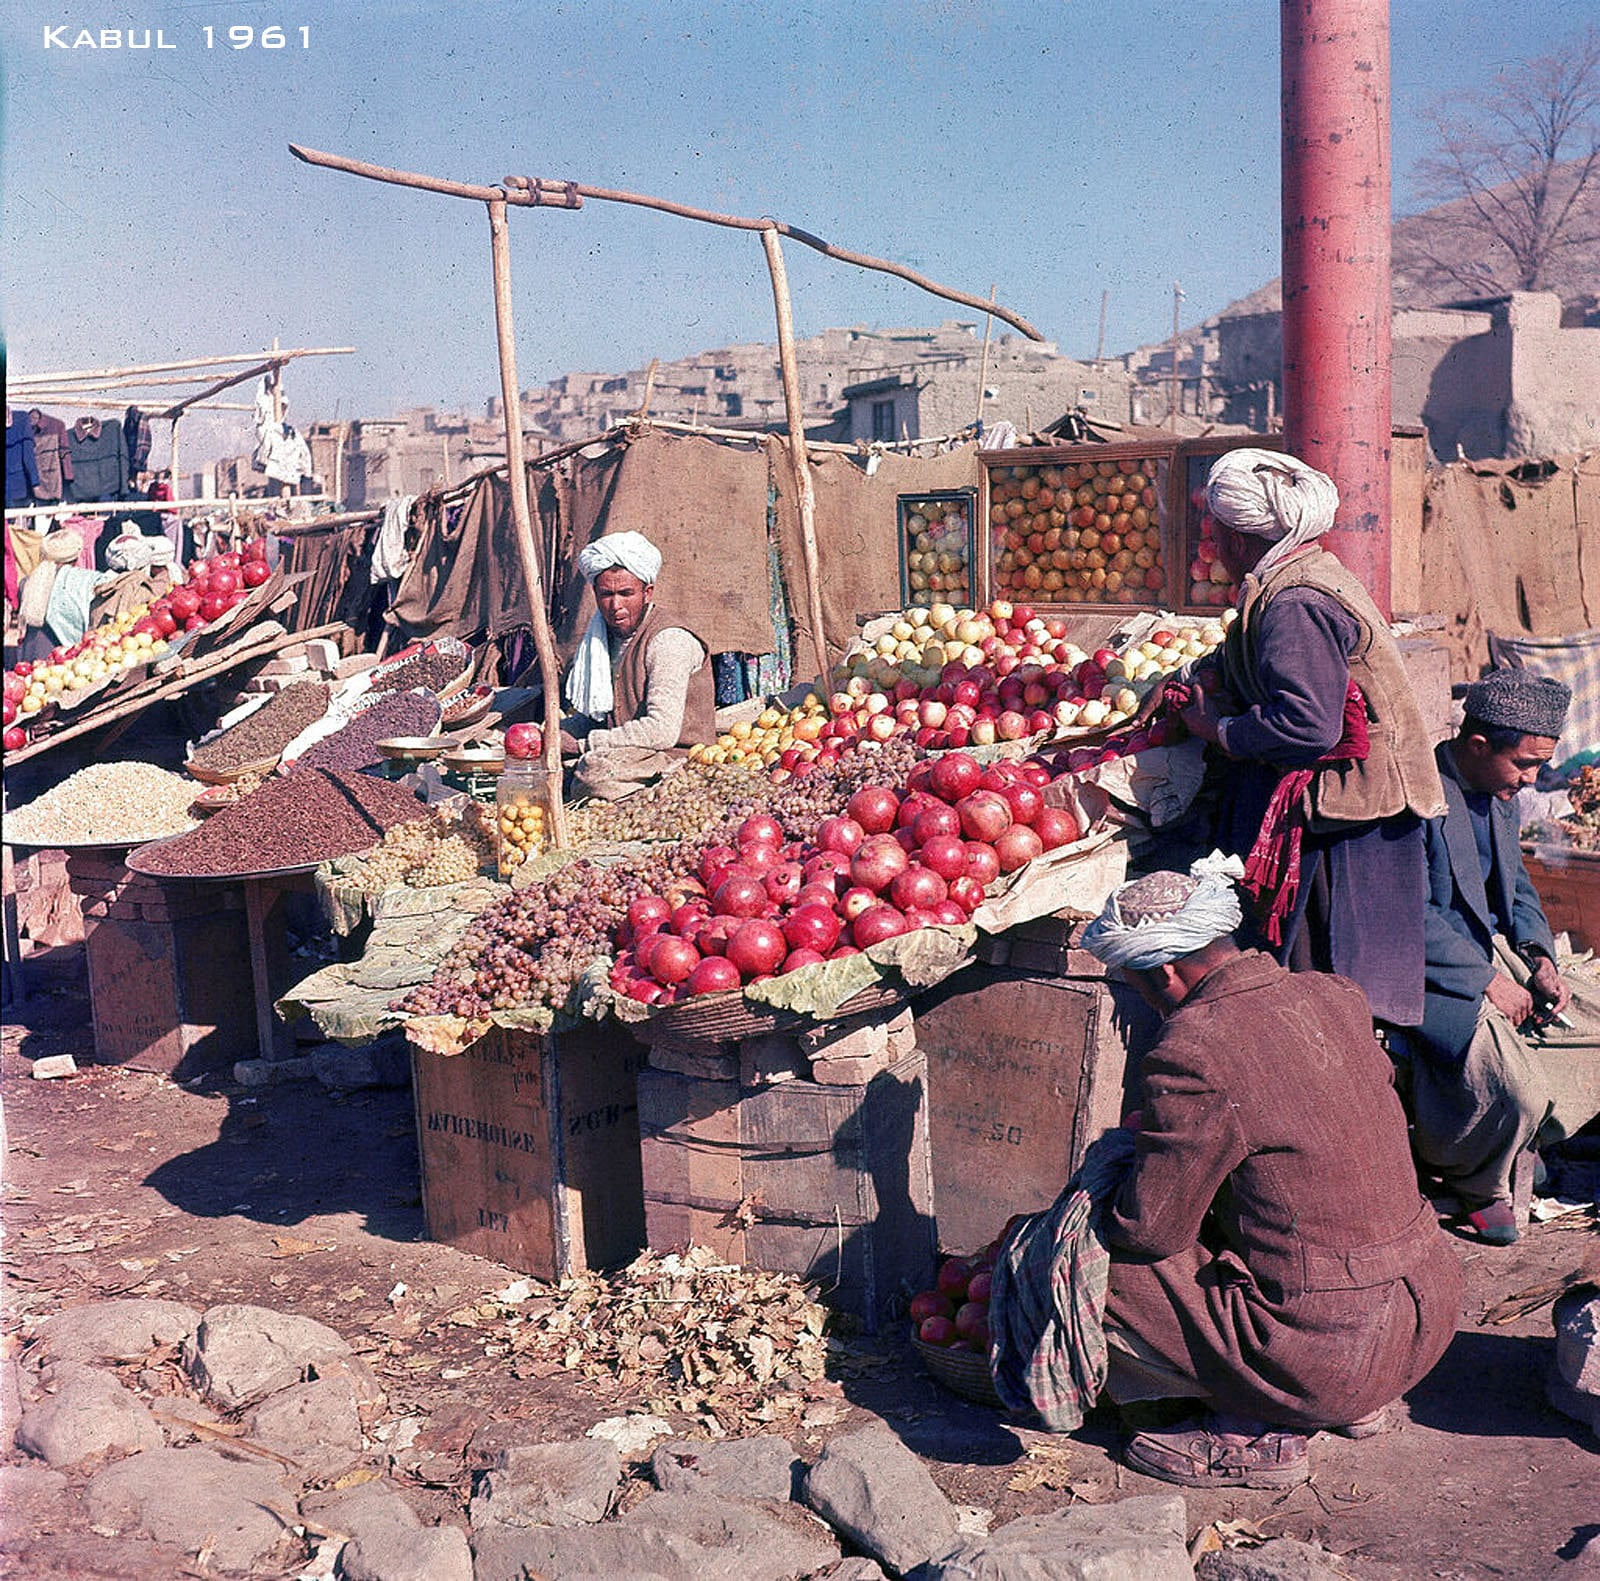 A photo of fruit markets in Kabul circa 1961.